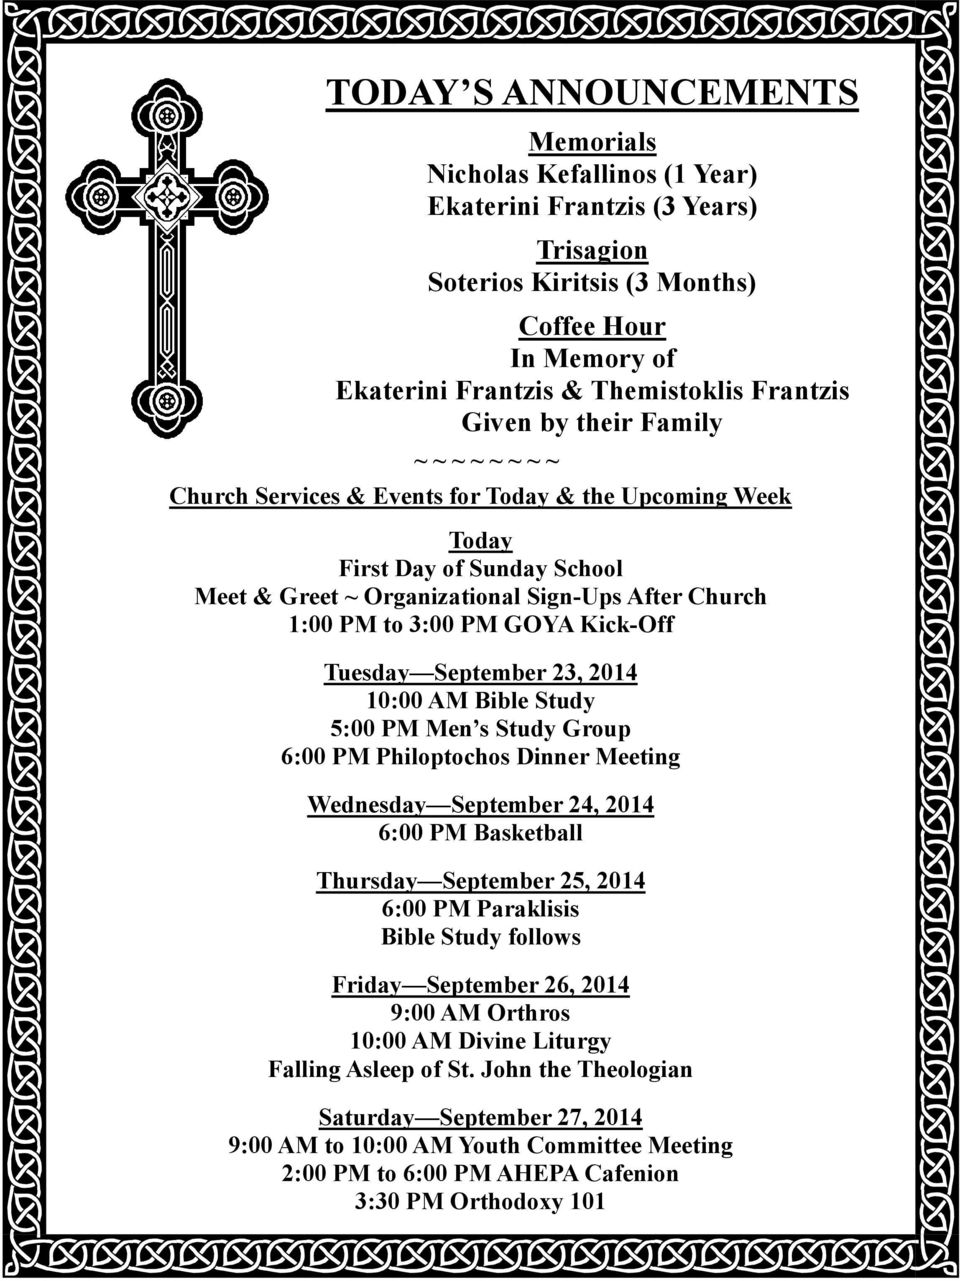 GOYA Kick-Off Tuesday September 23, 2014 10:00 AM Bible Study 5:00 PM Men s Study Group 6:00 PM Philoptochos Dinner Meeting Wednesday September 24, 2014 6:00 PM Basketball Thursday September 25, 2014